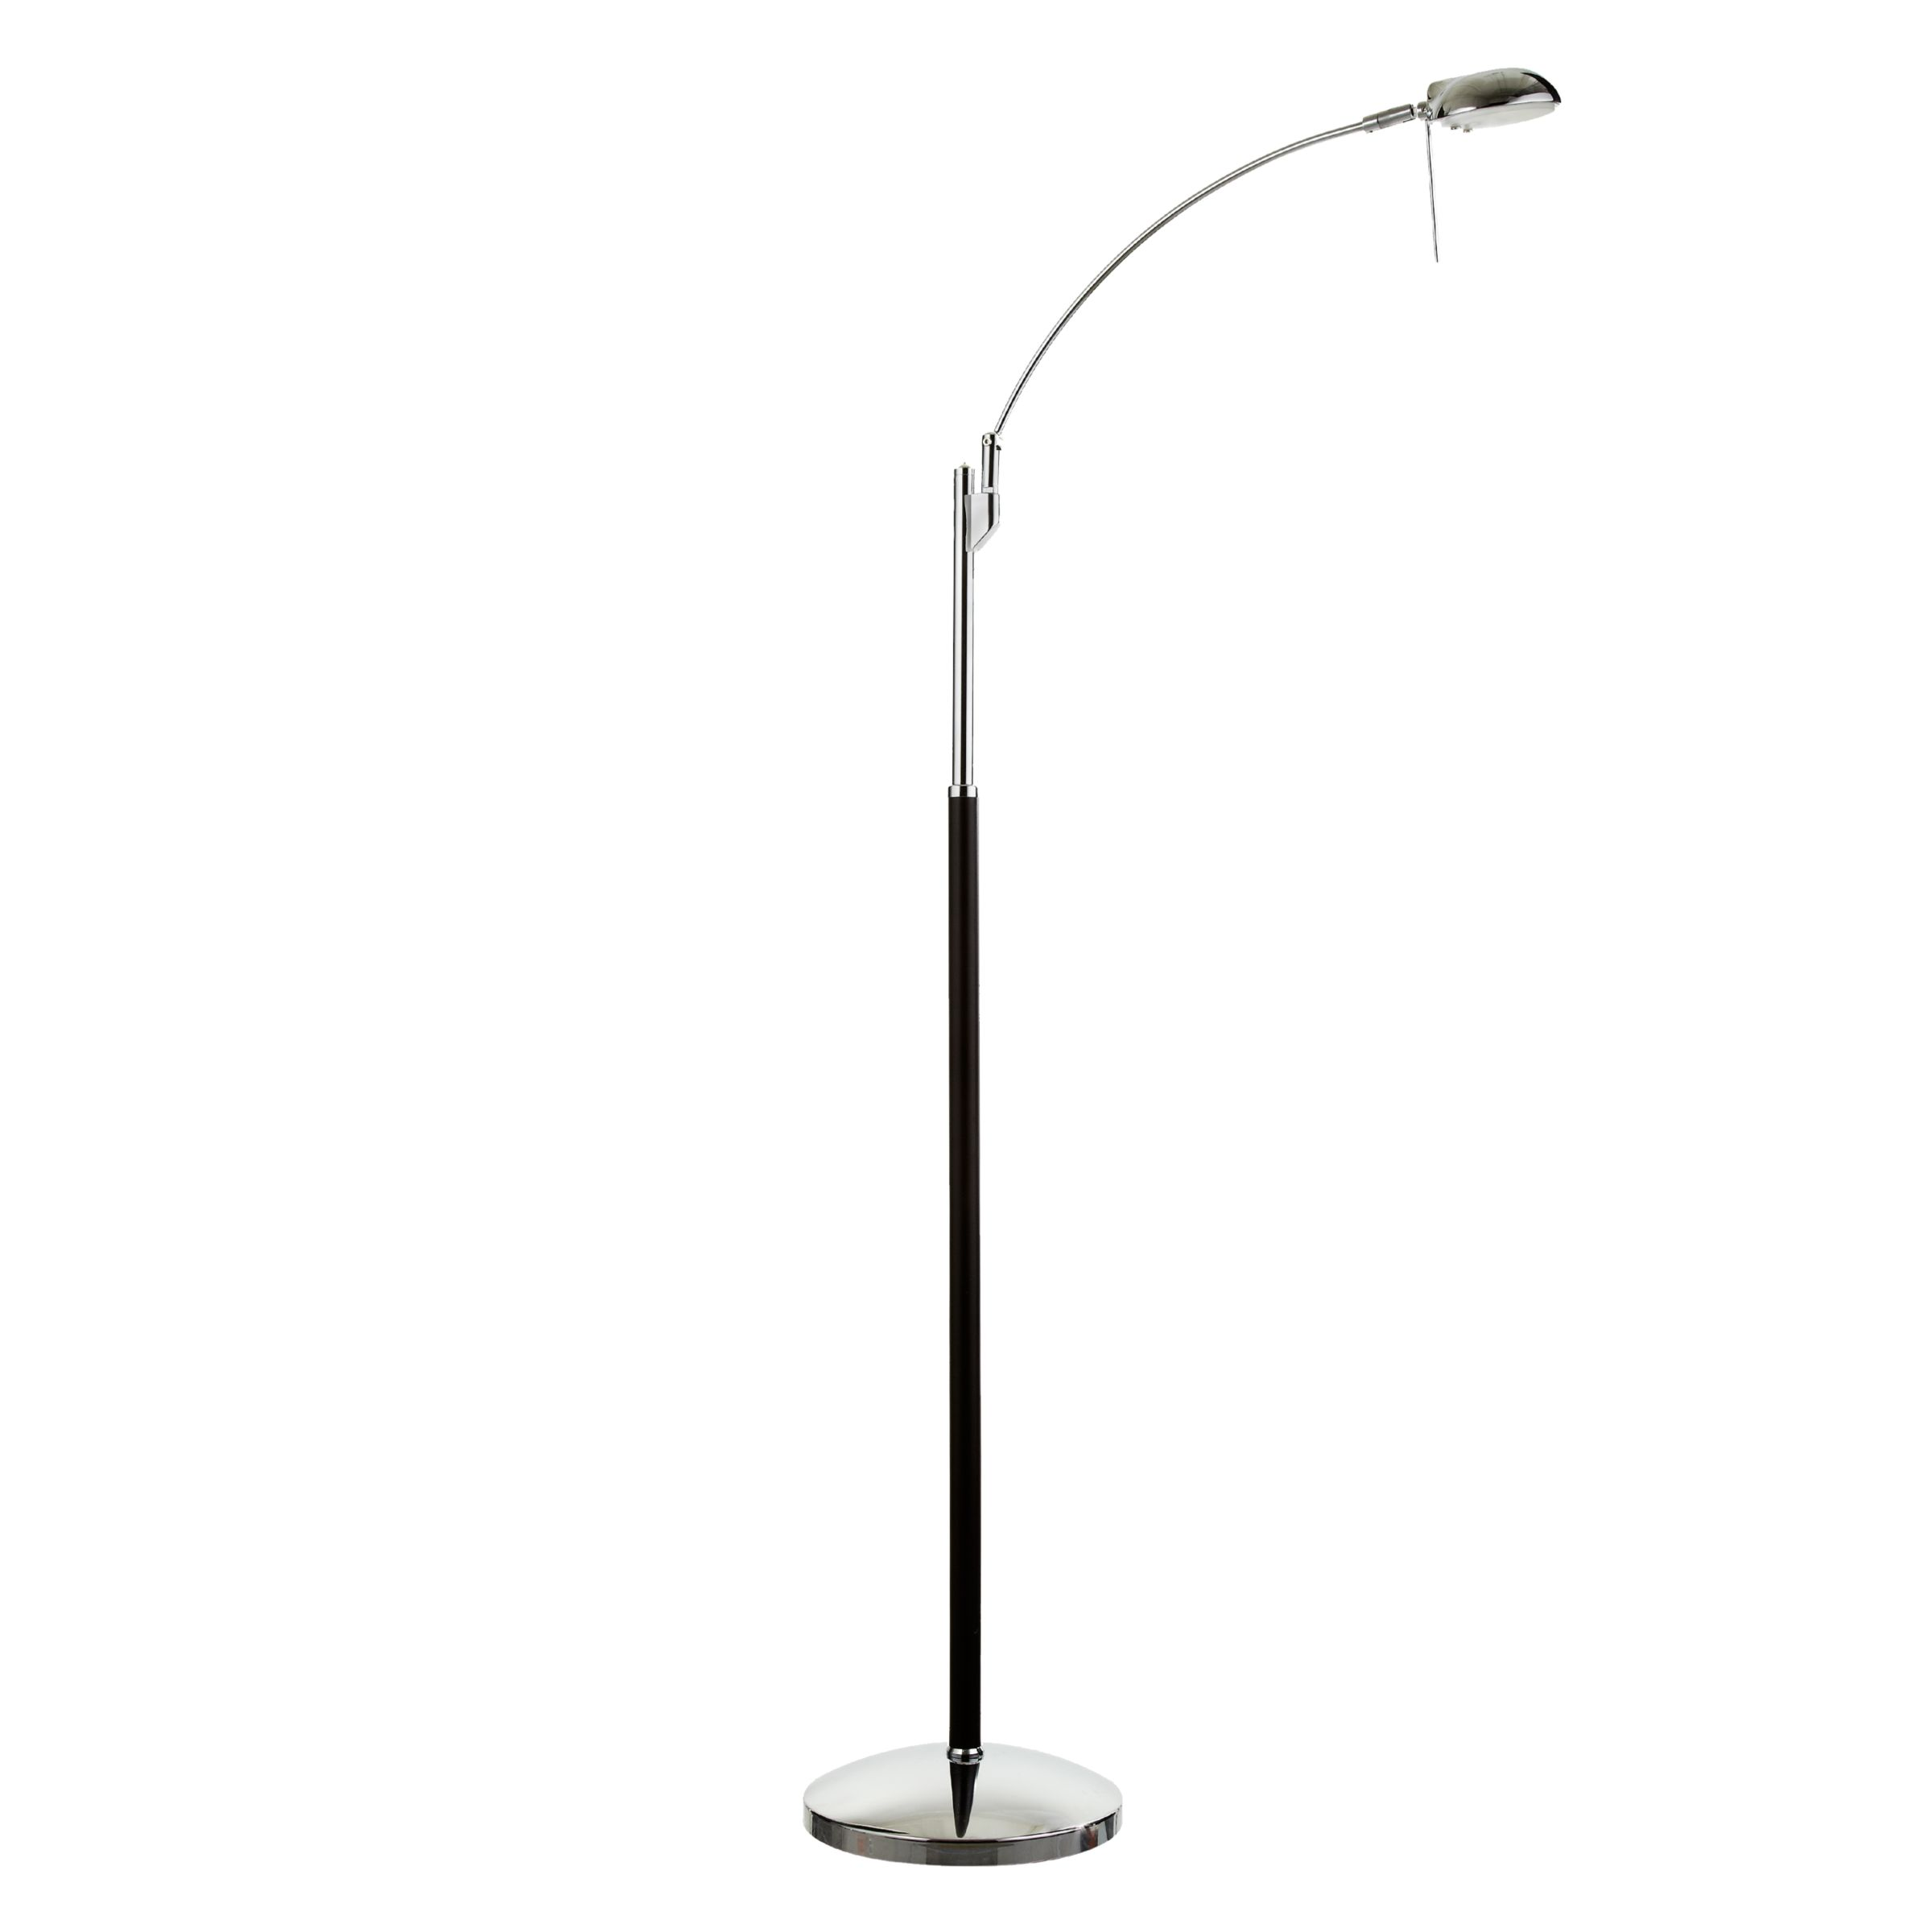 Astoria Standing Floor Lamp,